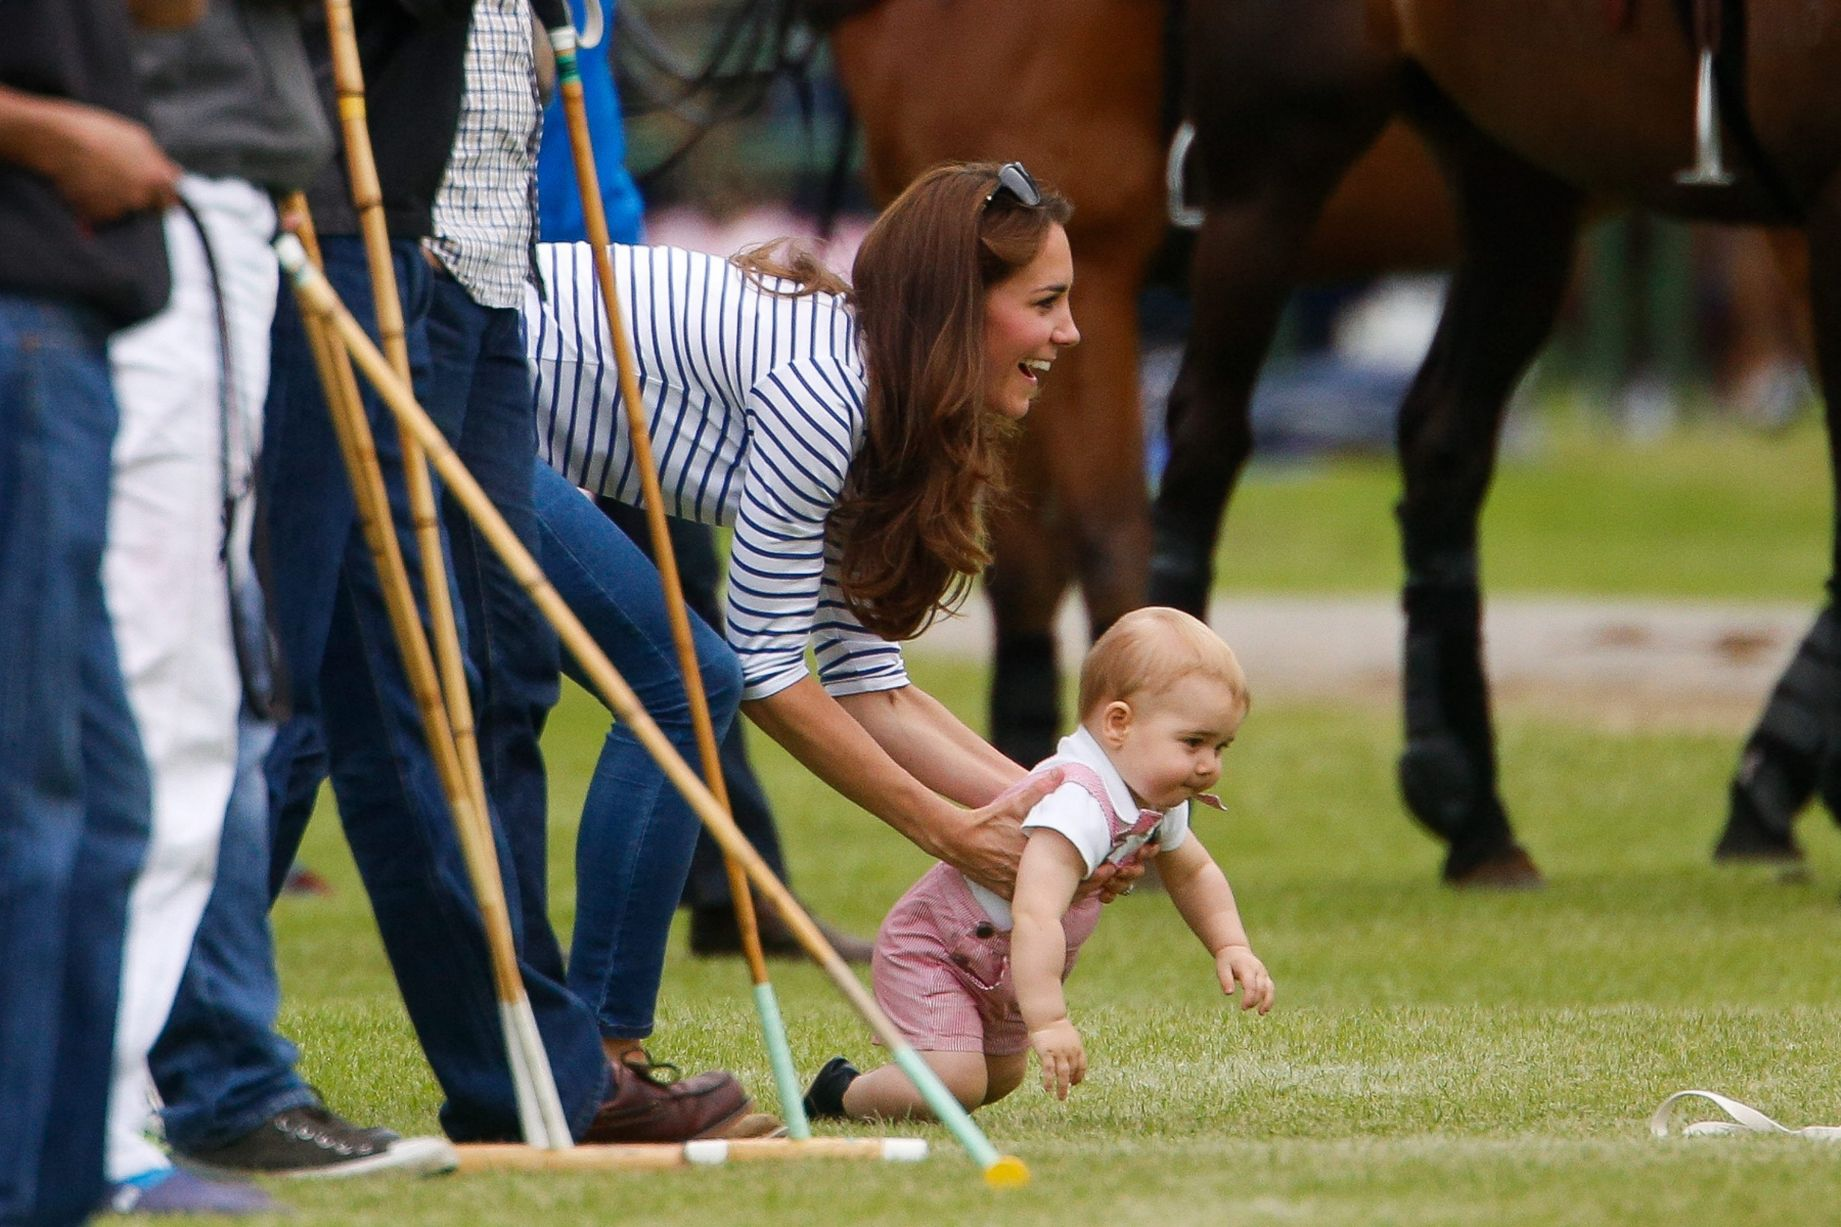 PAY-Prince-George-and-Kate-Middleton